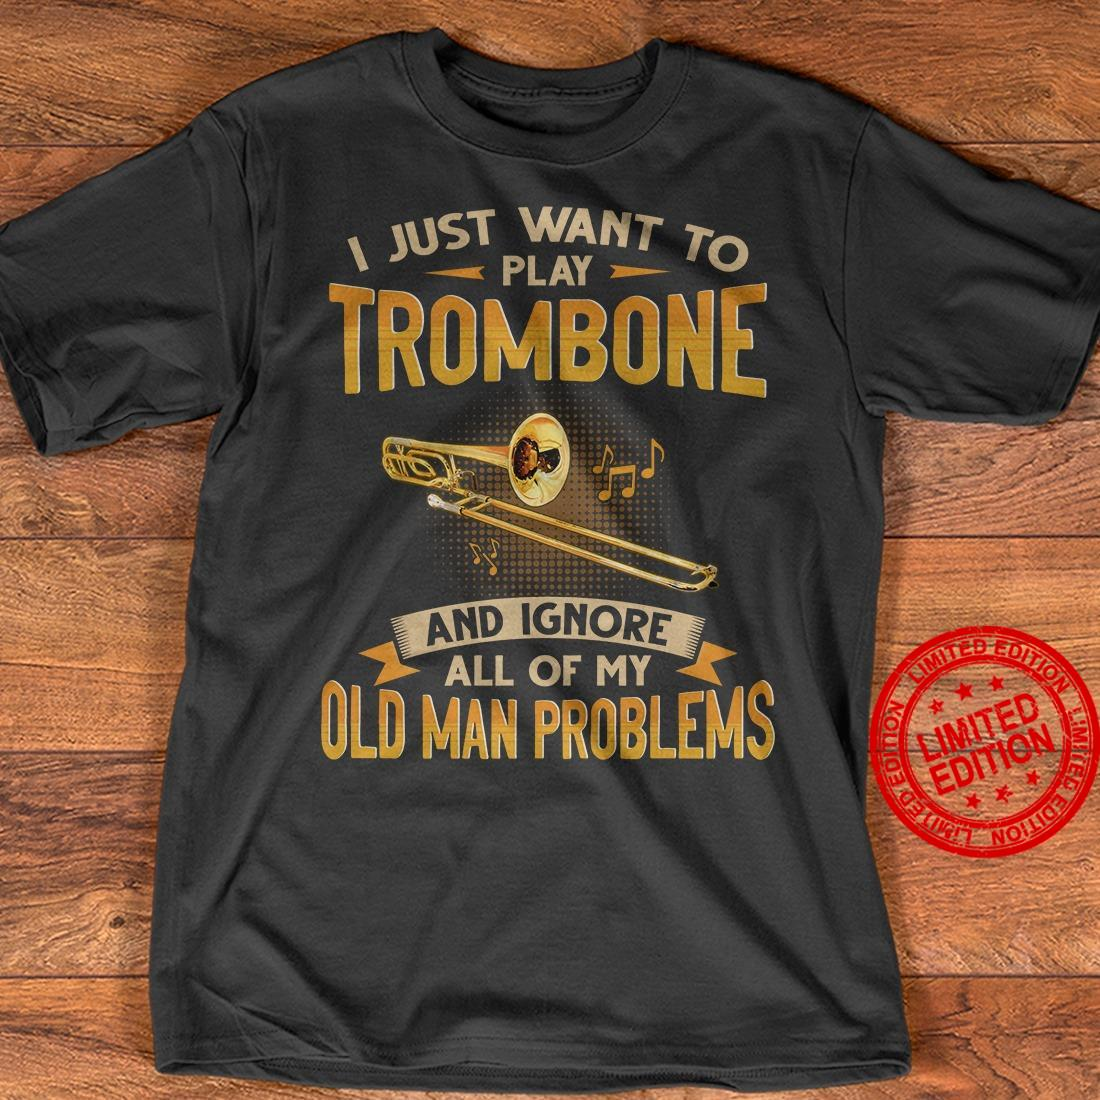 I Just Want To Play Trombone And Ignore All Of My Old Man Problems Shirt